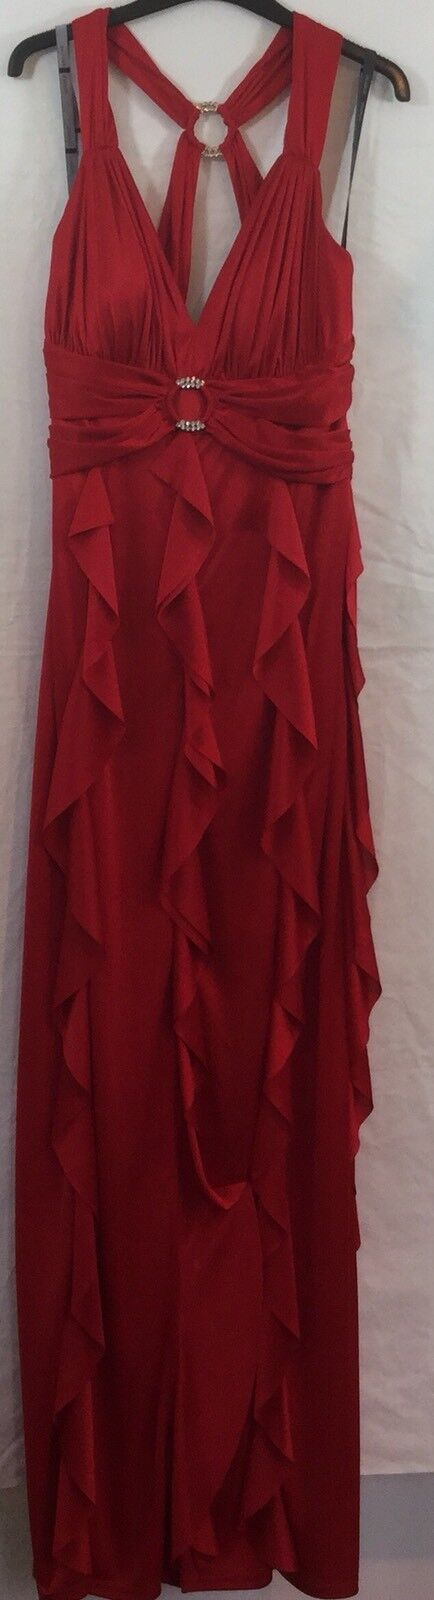 PEARCE FIONDA WOMENS RED STRAPLESS Party DRESS SIZE 12